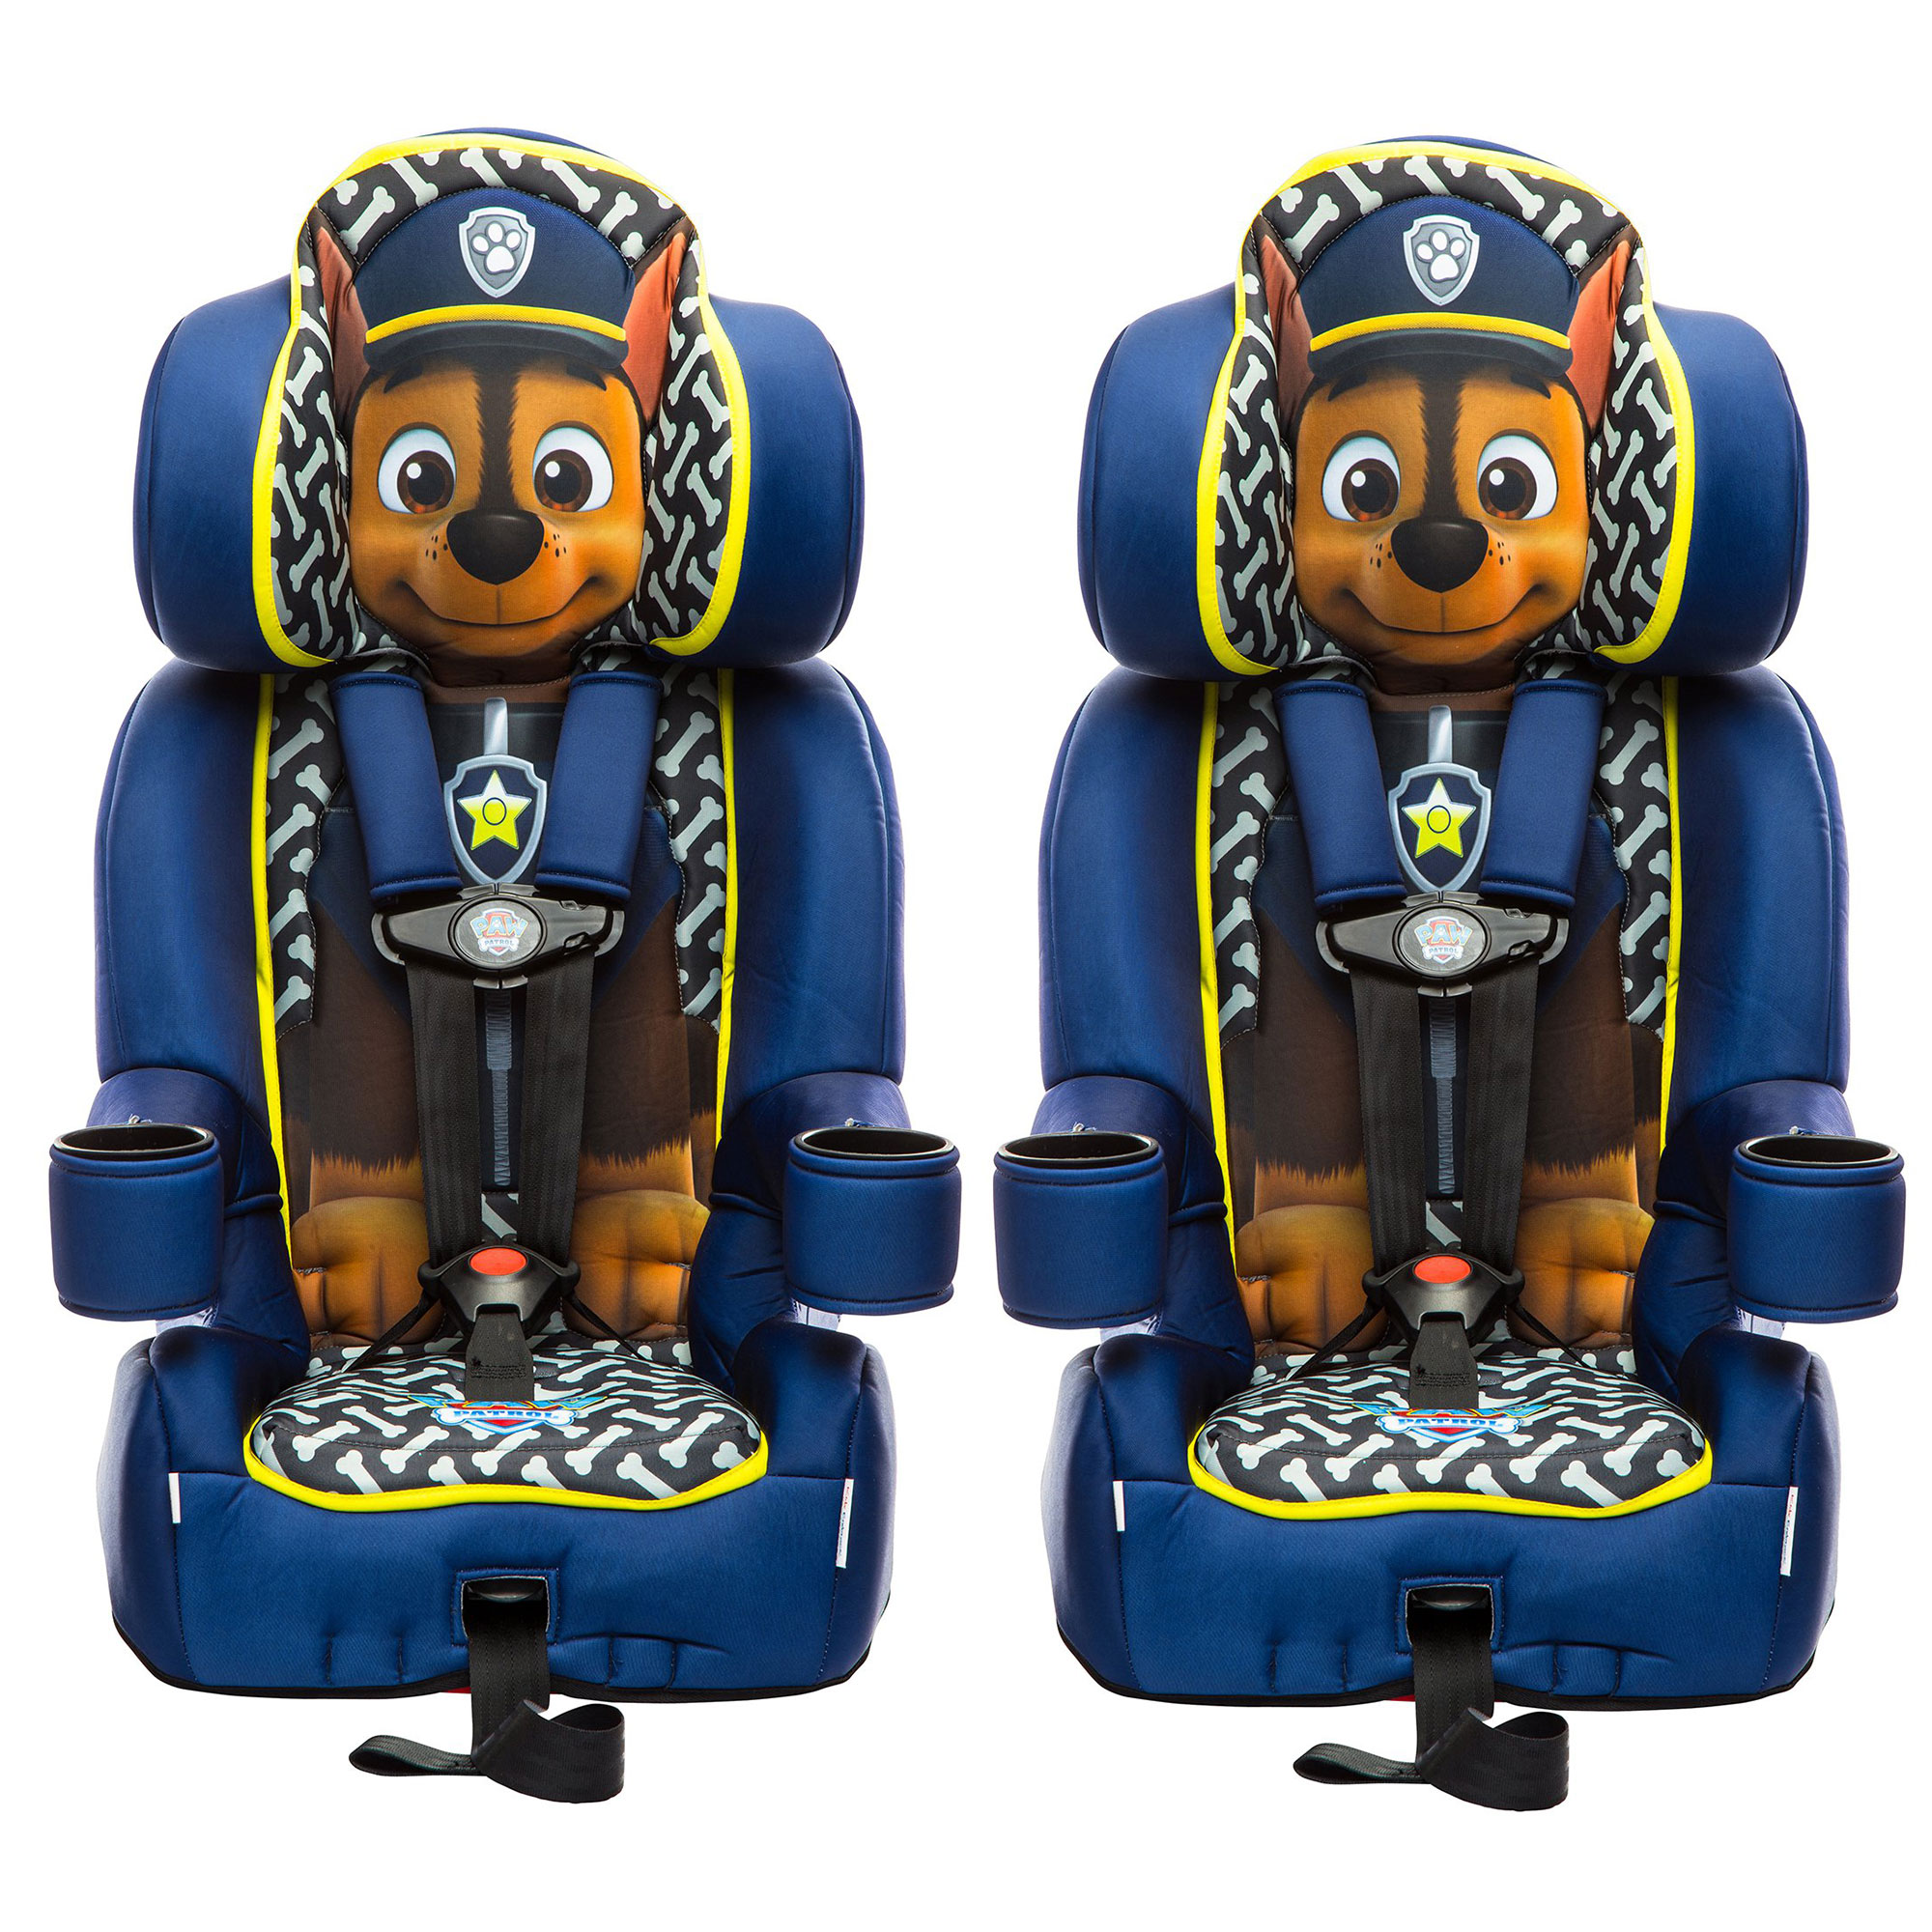 KidsEmbrace Nickelodeon Paw Patrol Chase Harness Booster Car Seat (2 Pack)